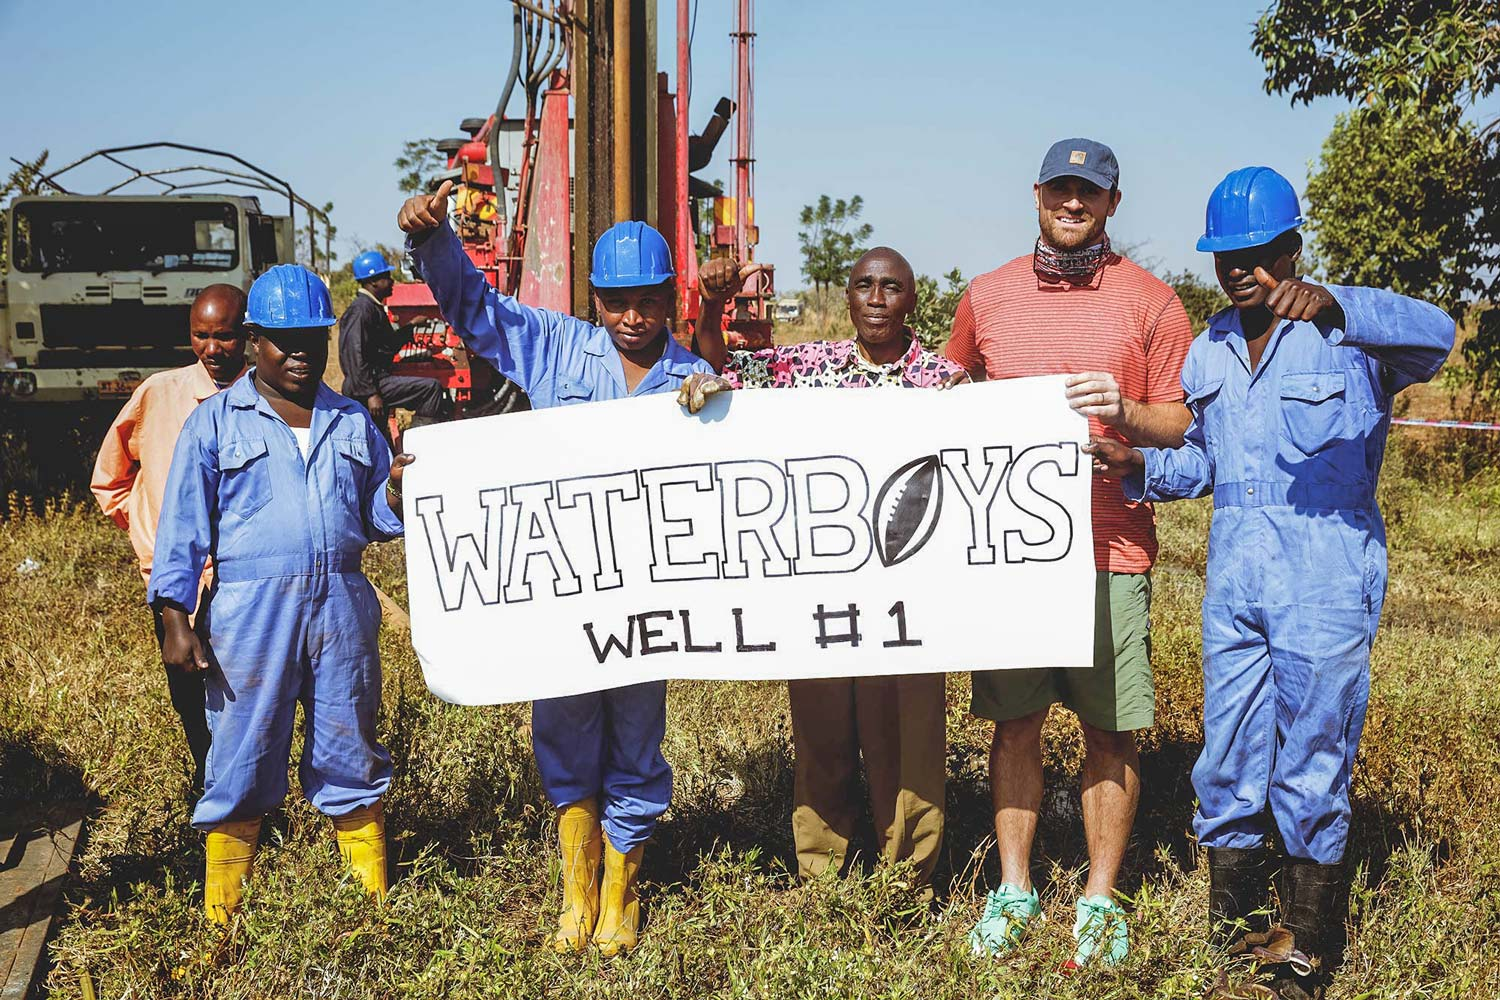 Chris Long, second from right, celebrates with workers after the completion of the first well in Tanzania.